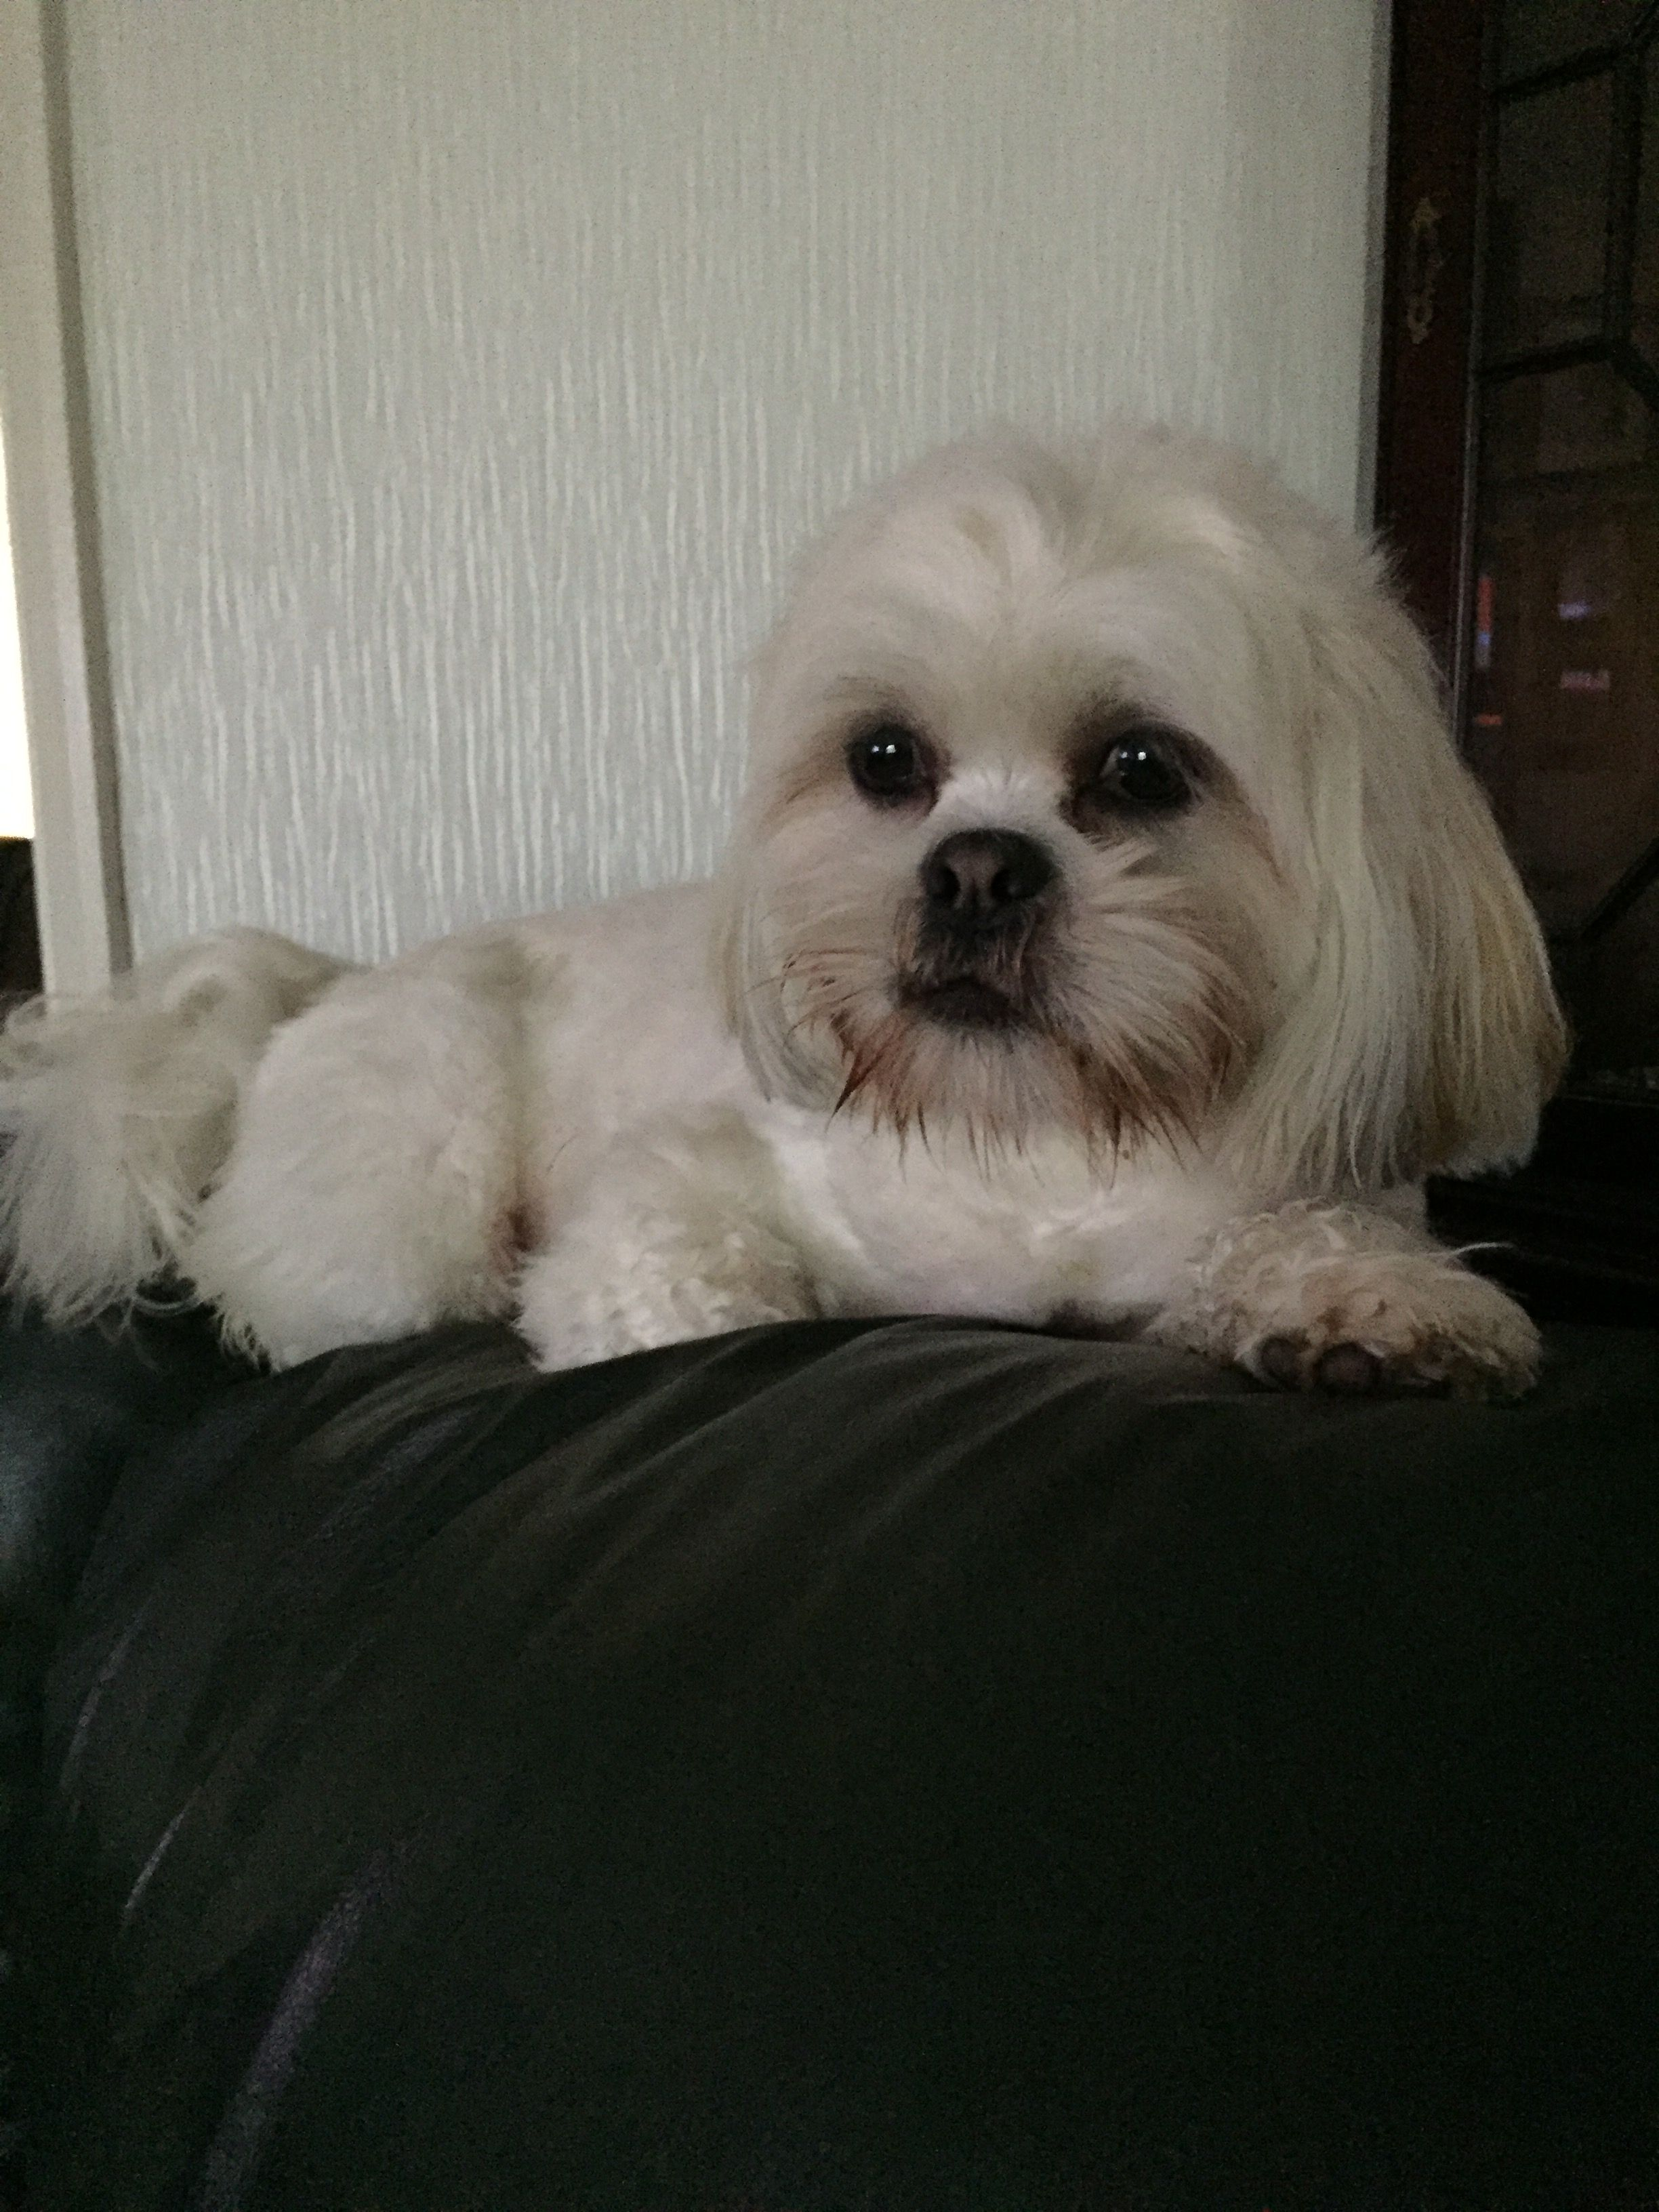 Pin by Sara on new lhaso's Lhasa apso, Pets, Dog grooming